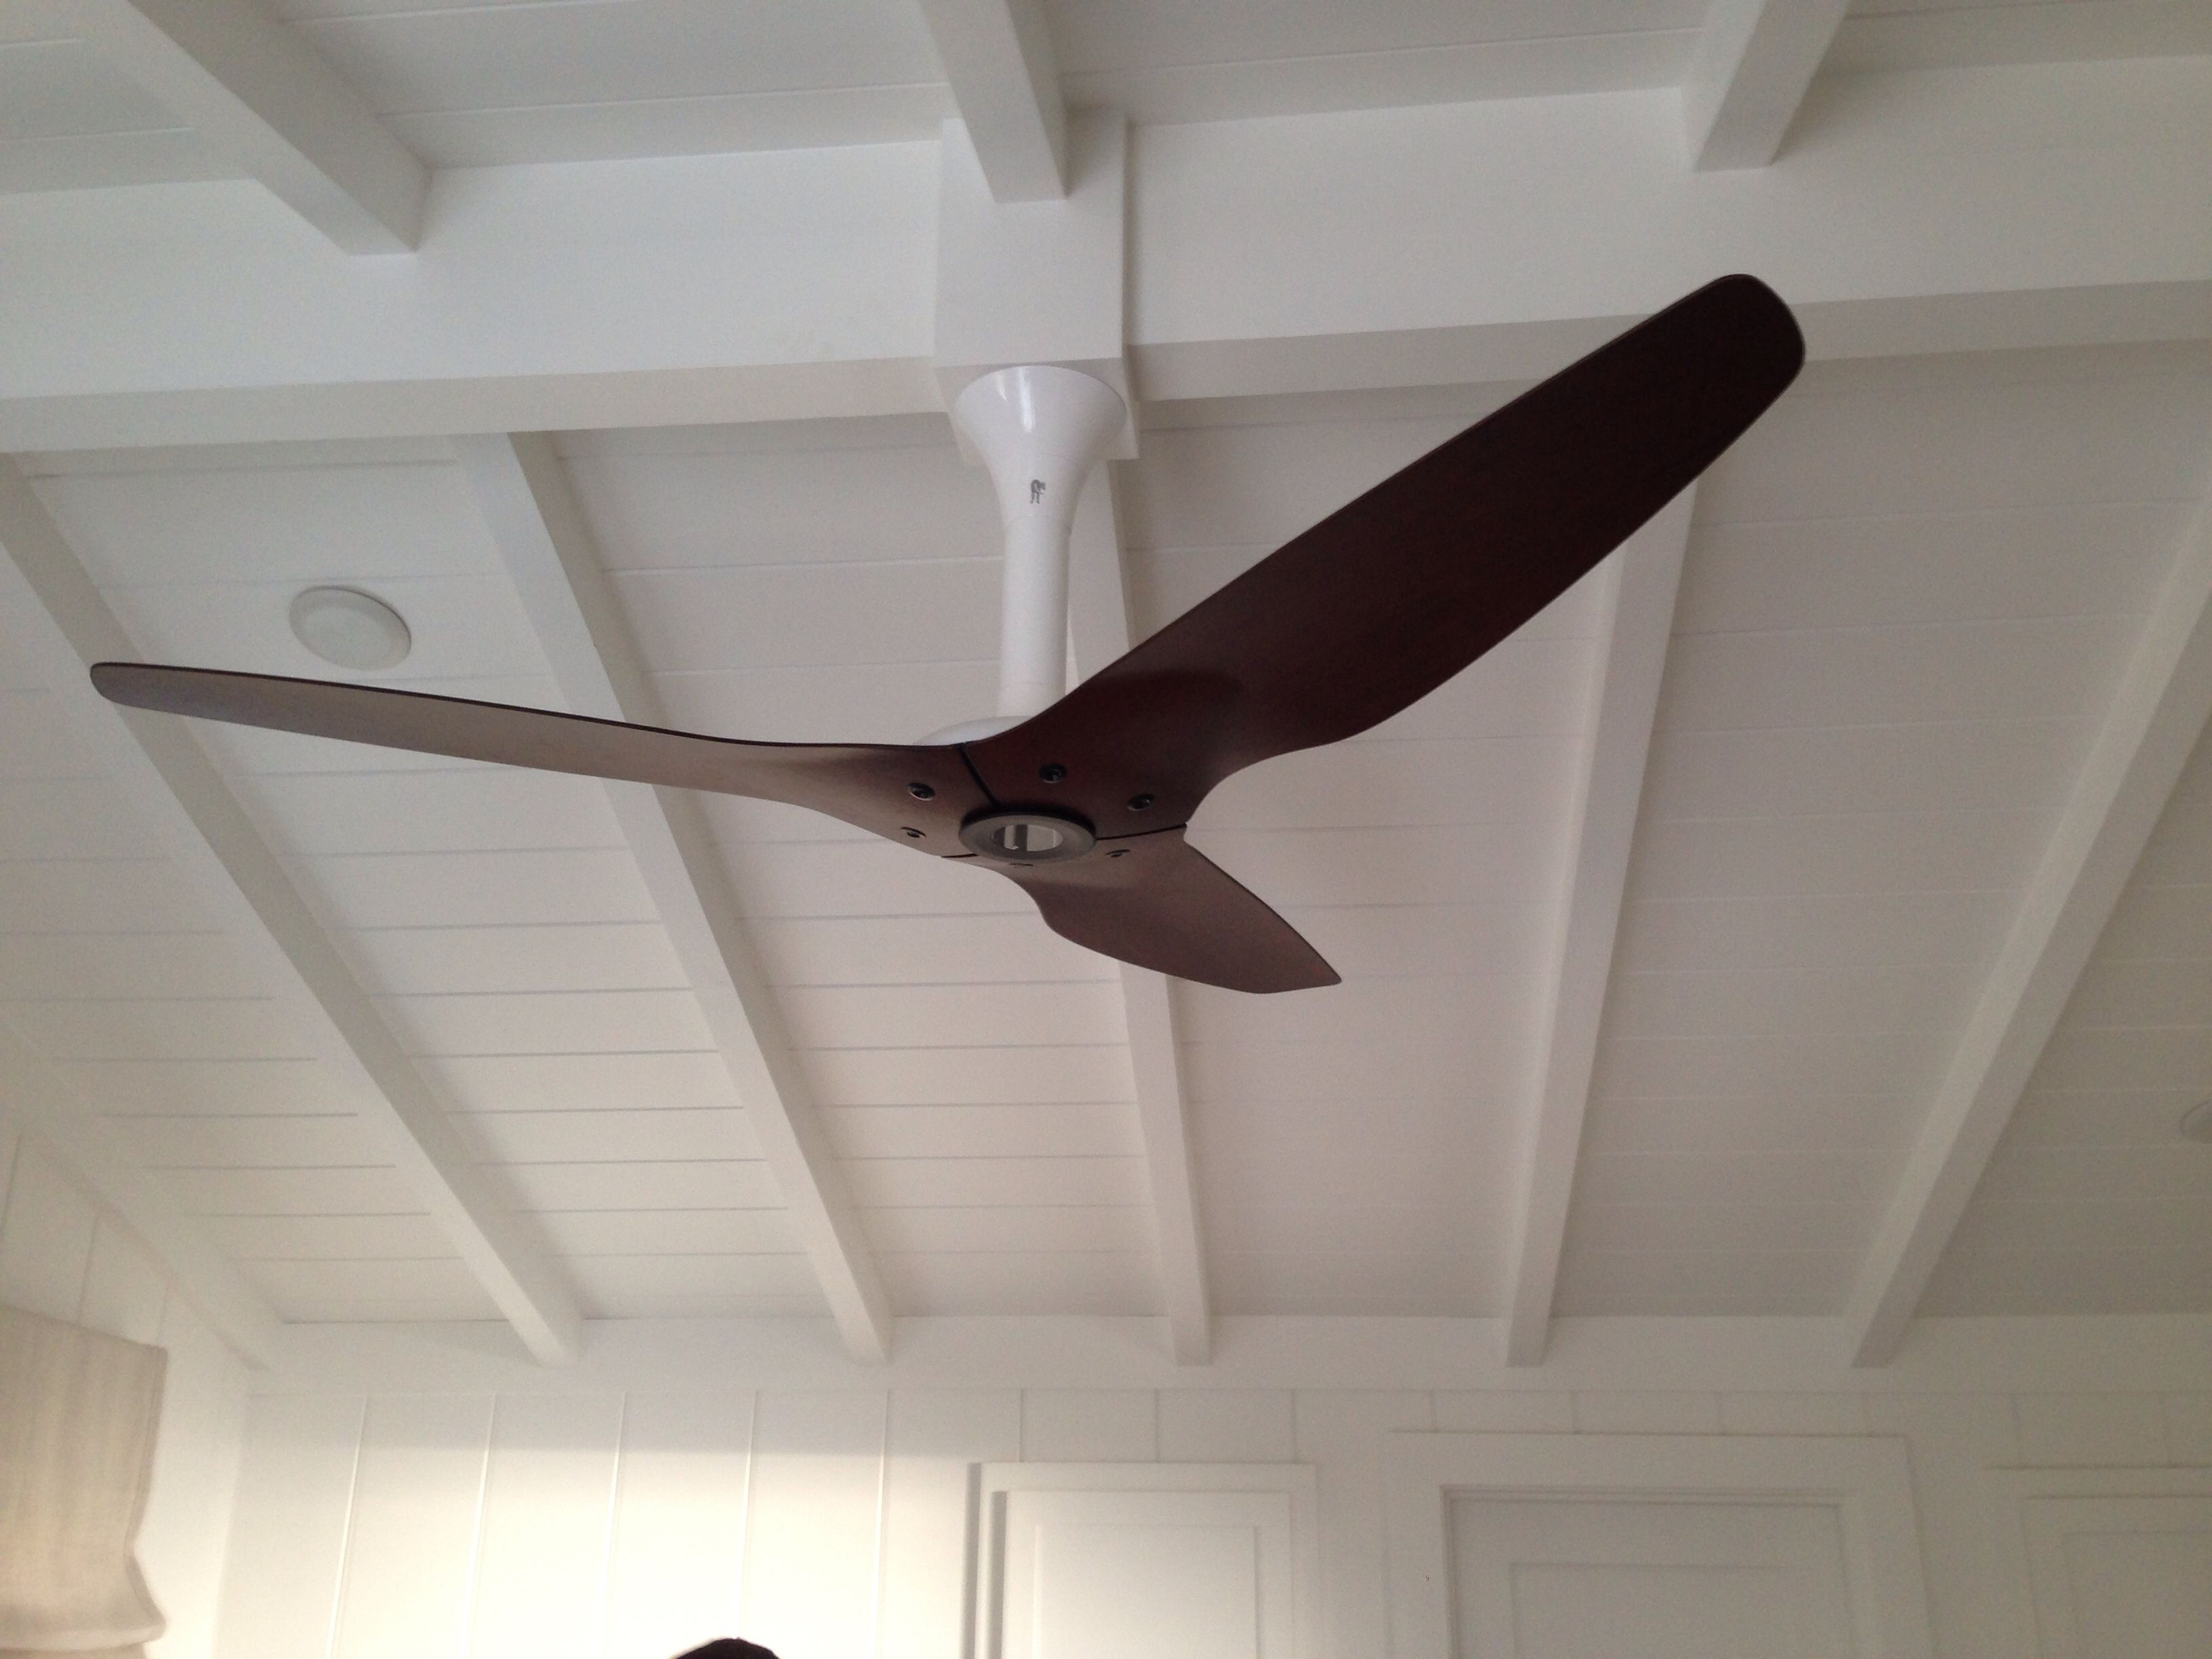 Ceiling Fan Over Bed Haiku Big Ass Fans Rofo Bedroom Remodel By